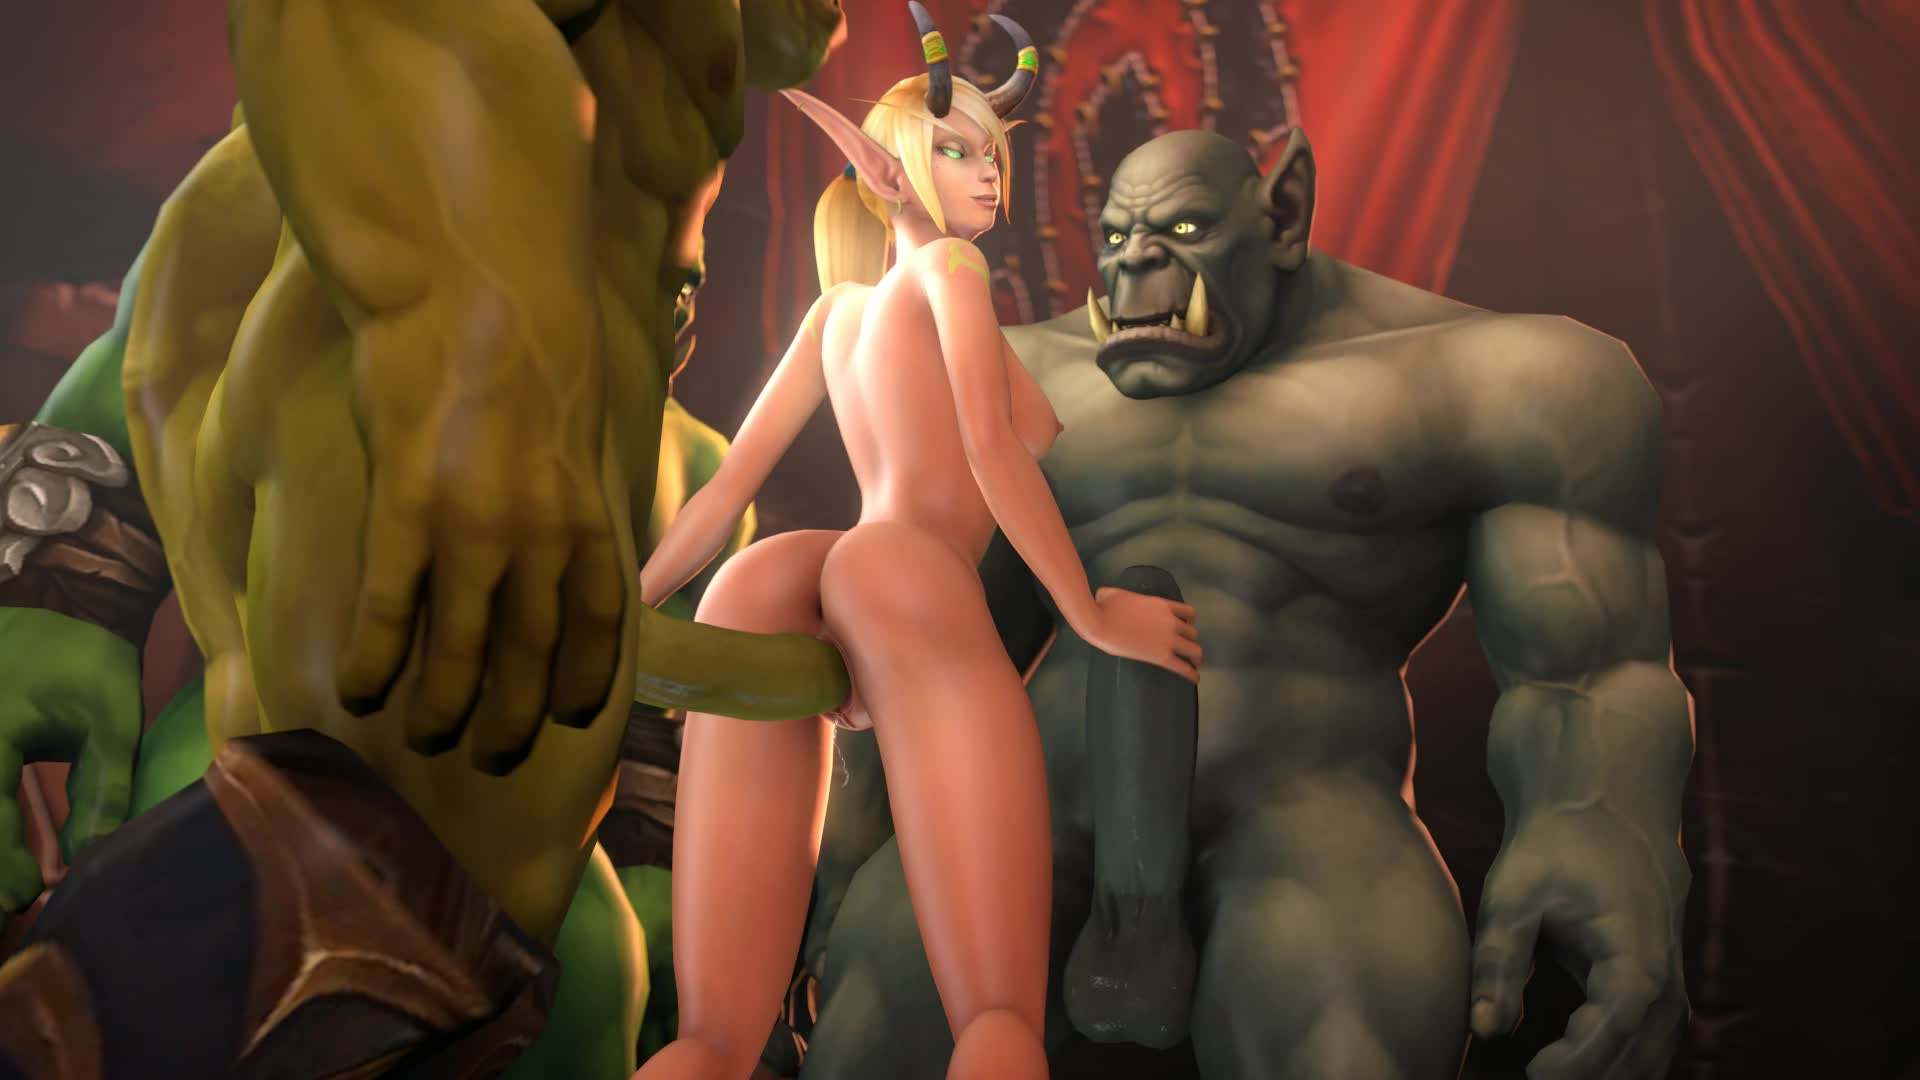 Warcraft fucking anime sexy download